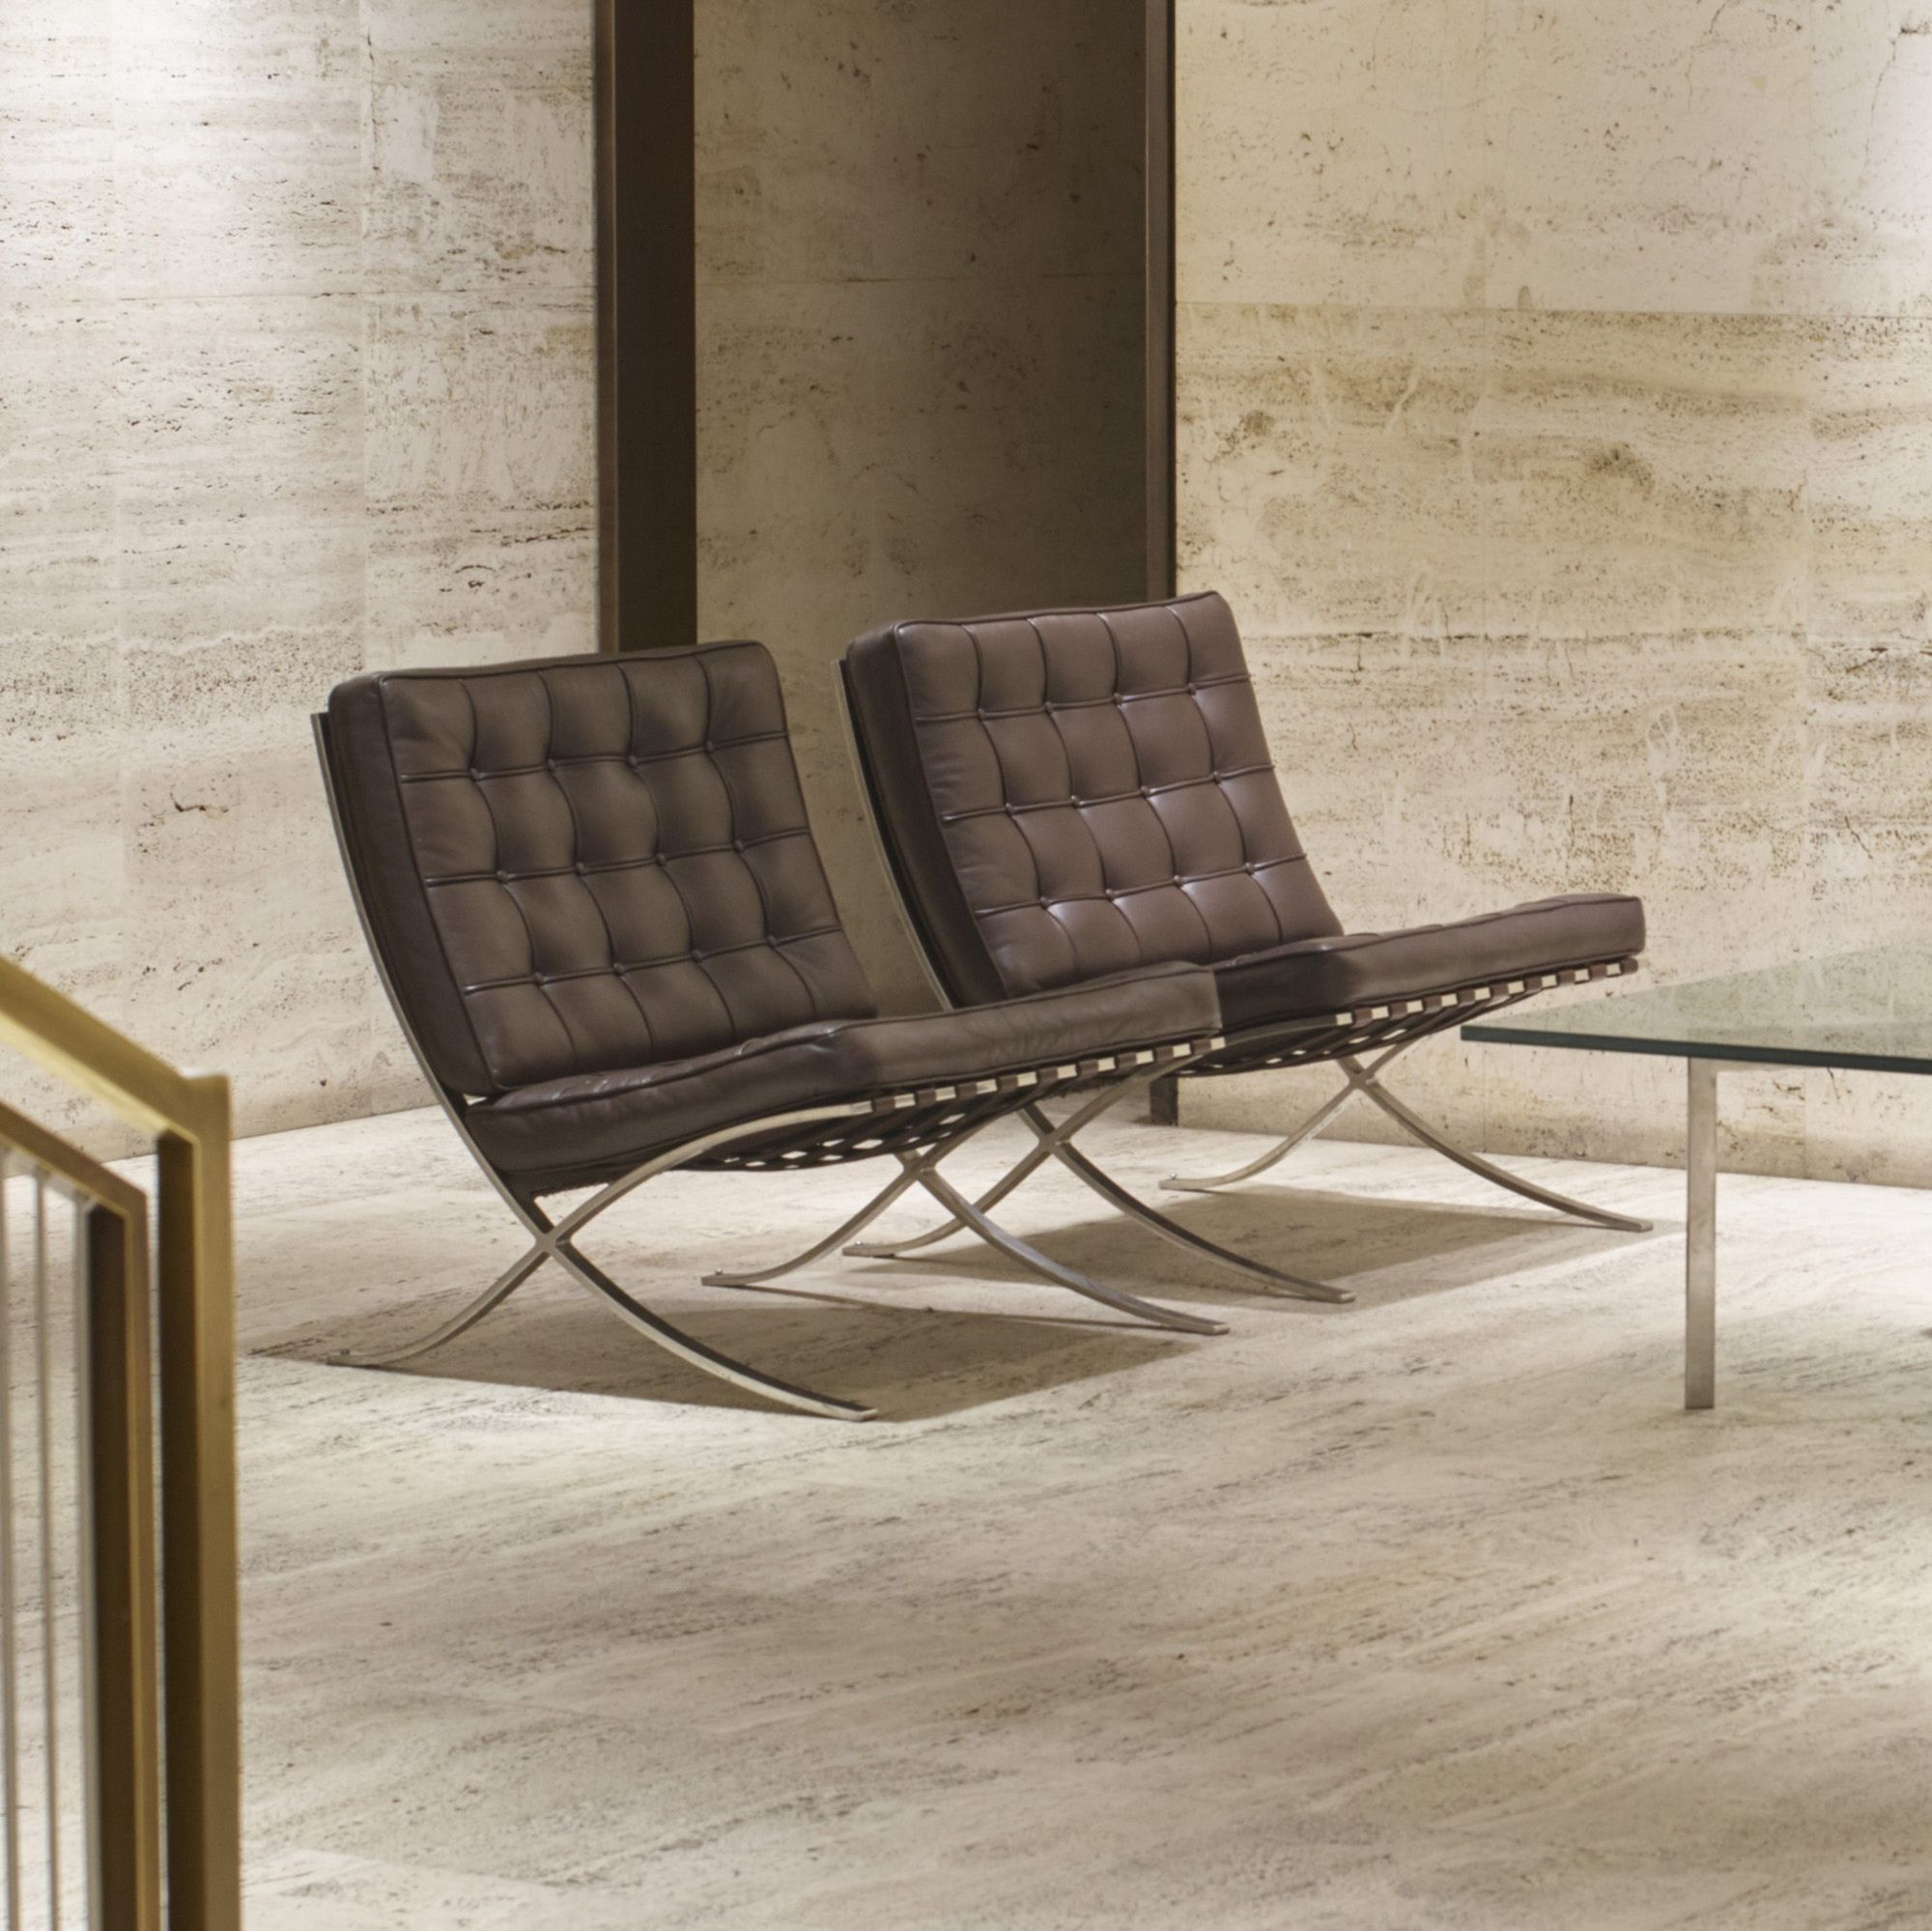 Lot 101 Ludwig Mies van der Rohe Barcelona chairs from the